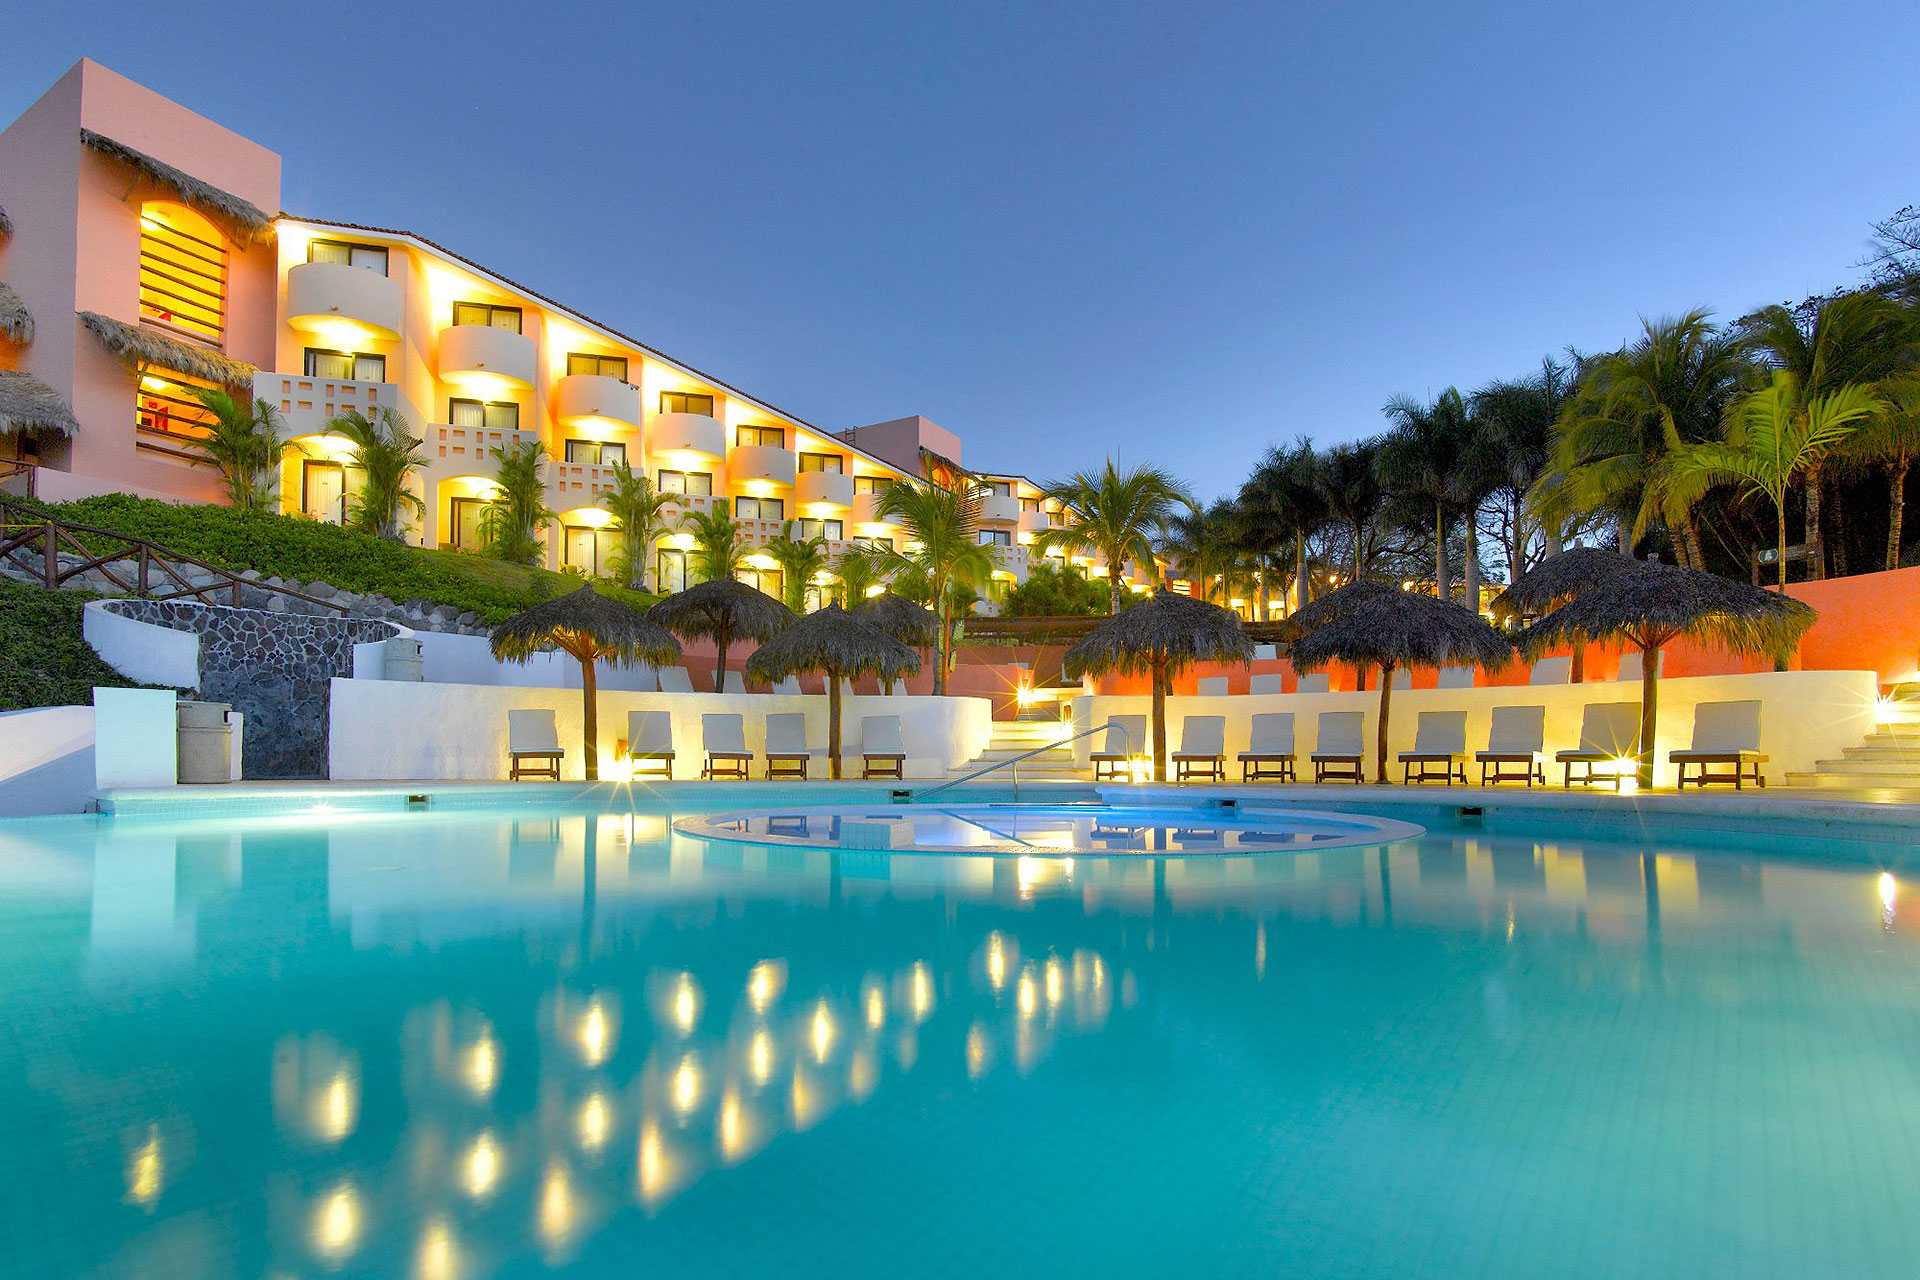 Pool at Night at Grand Palladium Vallarta Resort & Spa; Courtesy of Grand Palladium Vallarta Resort & Spa